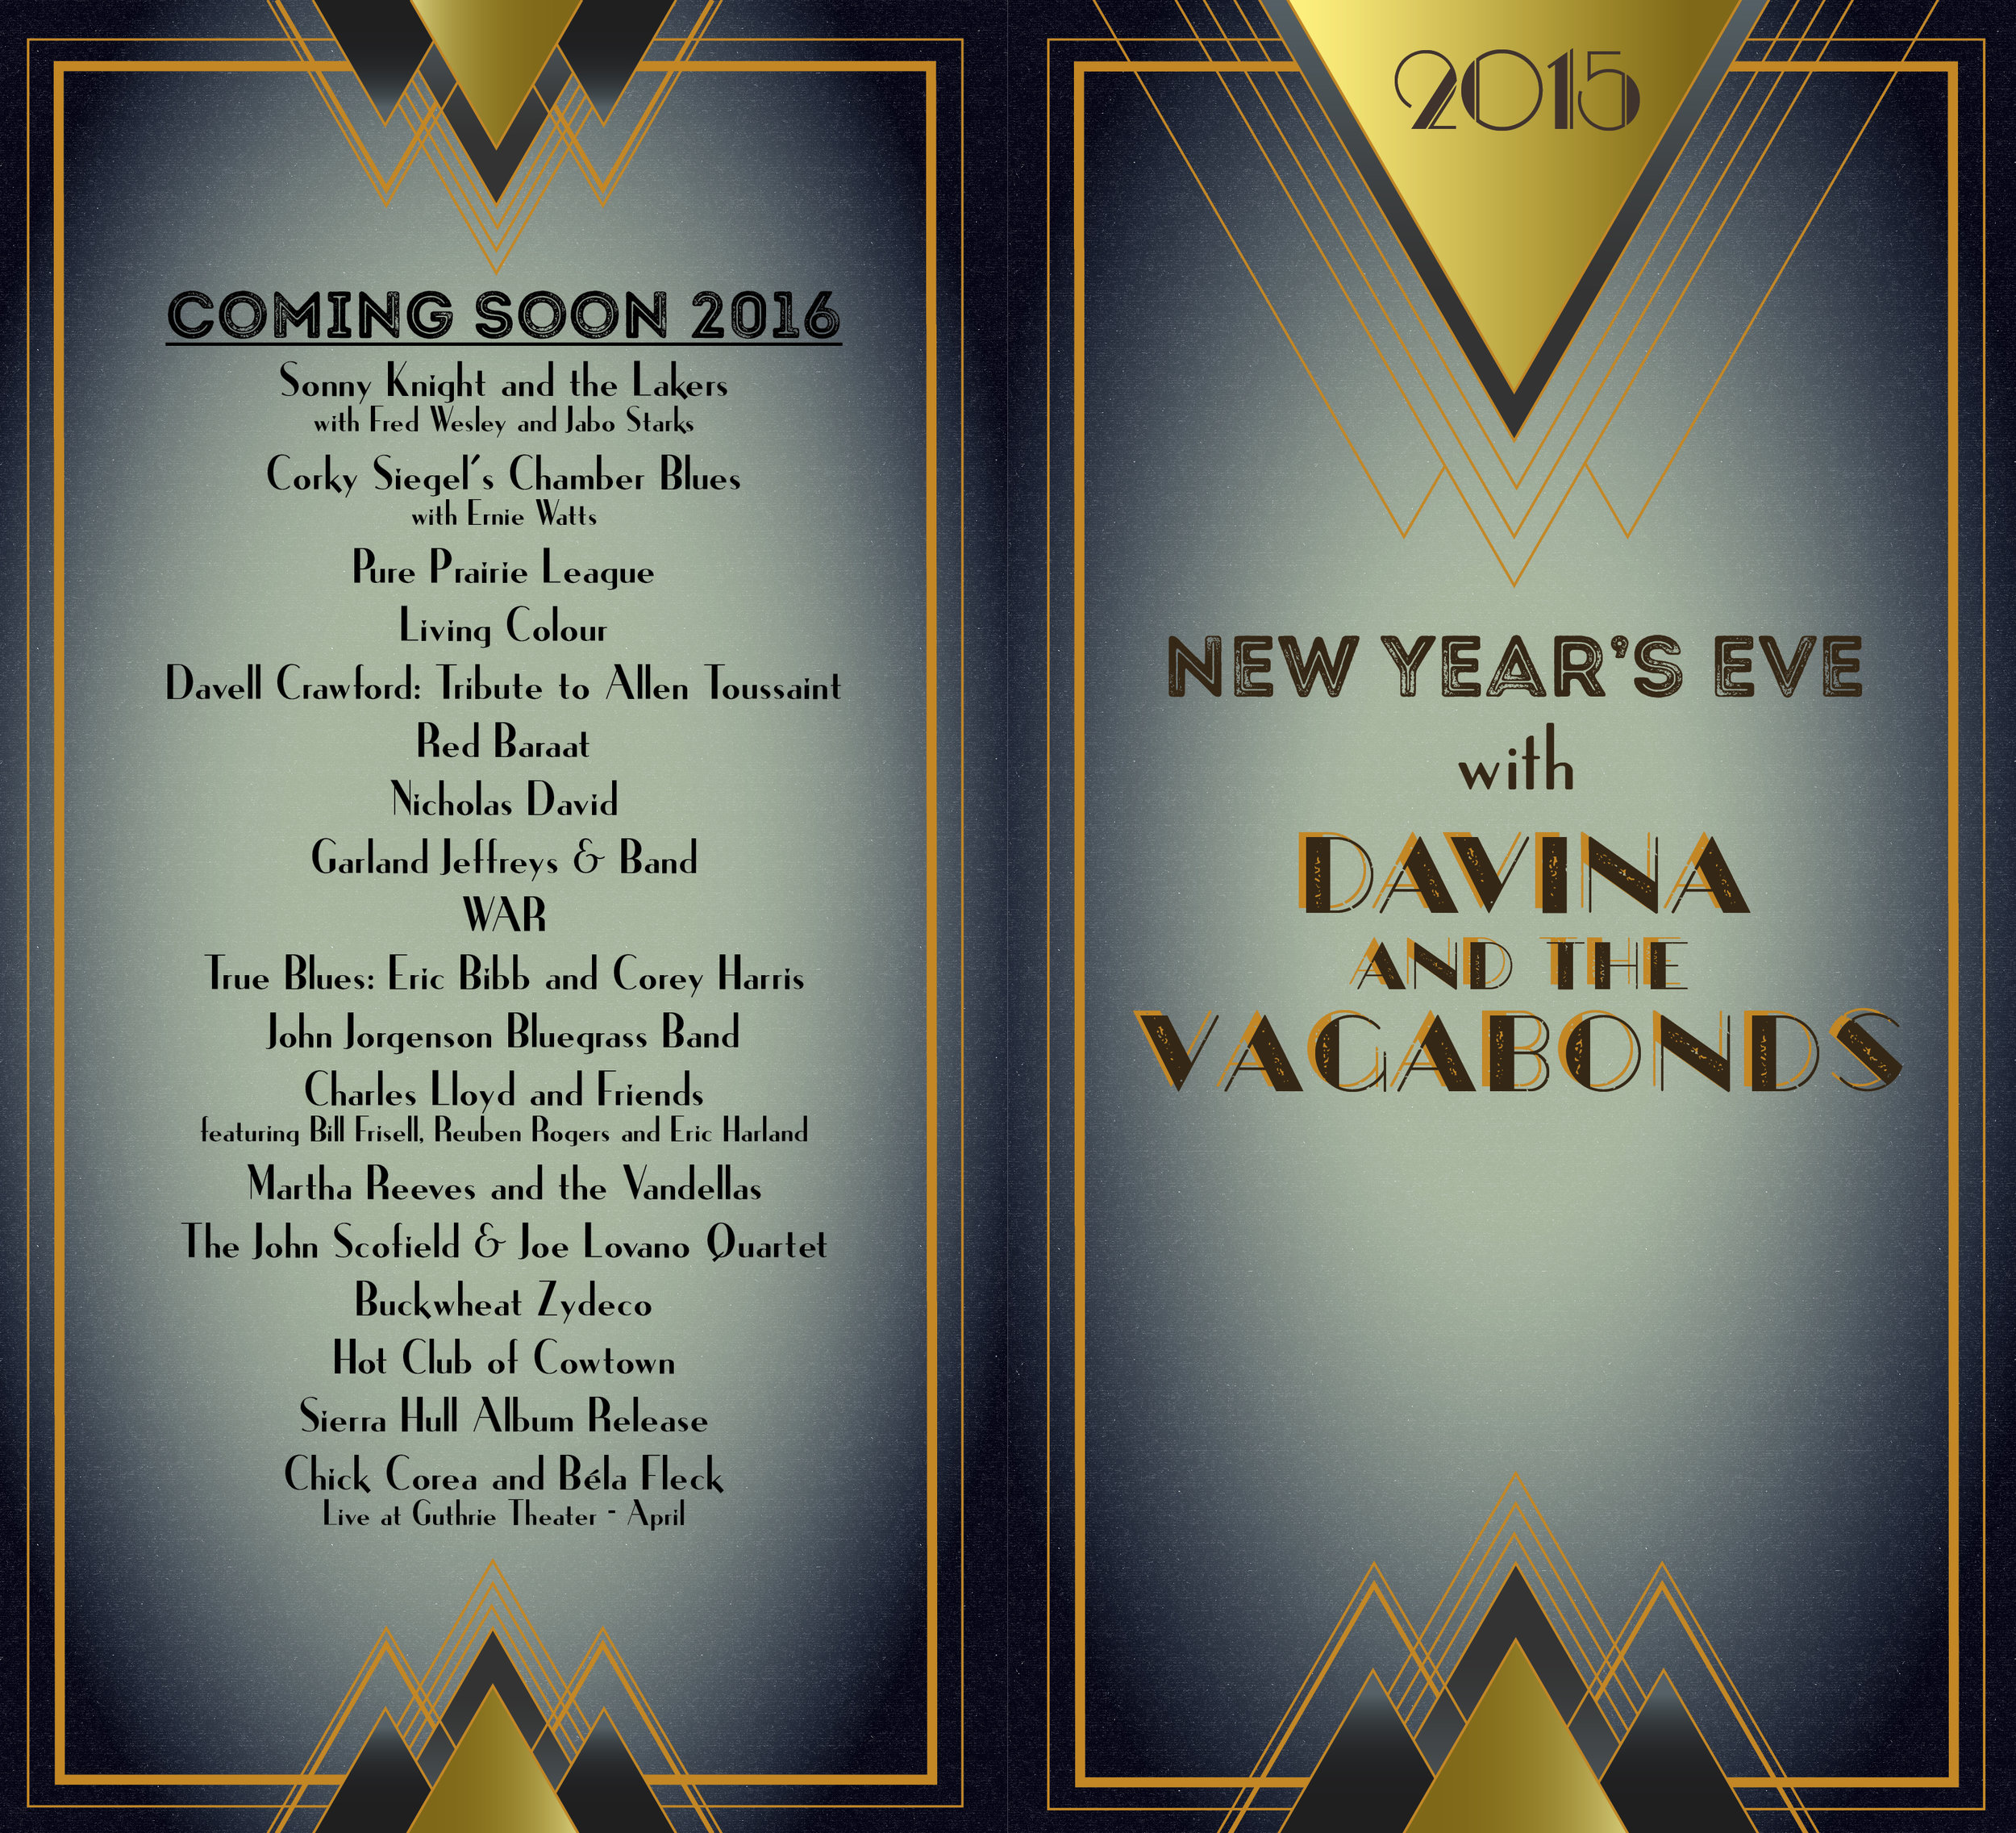 New Year's Eve Menu at The Dakota Jazz Club (1)